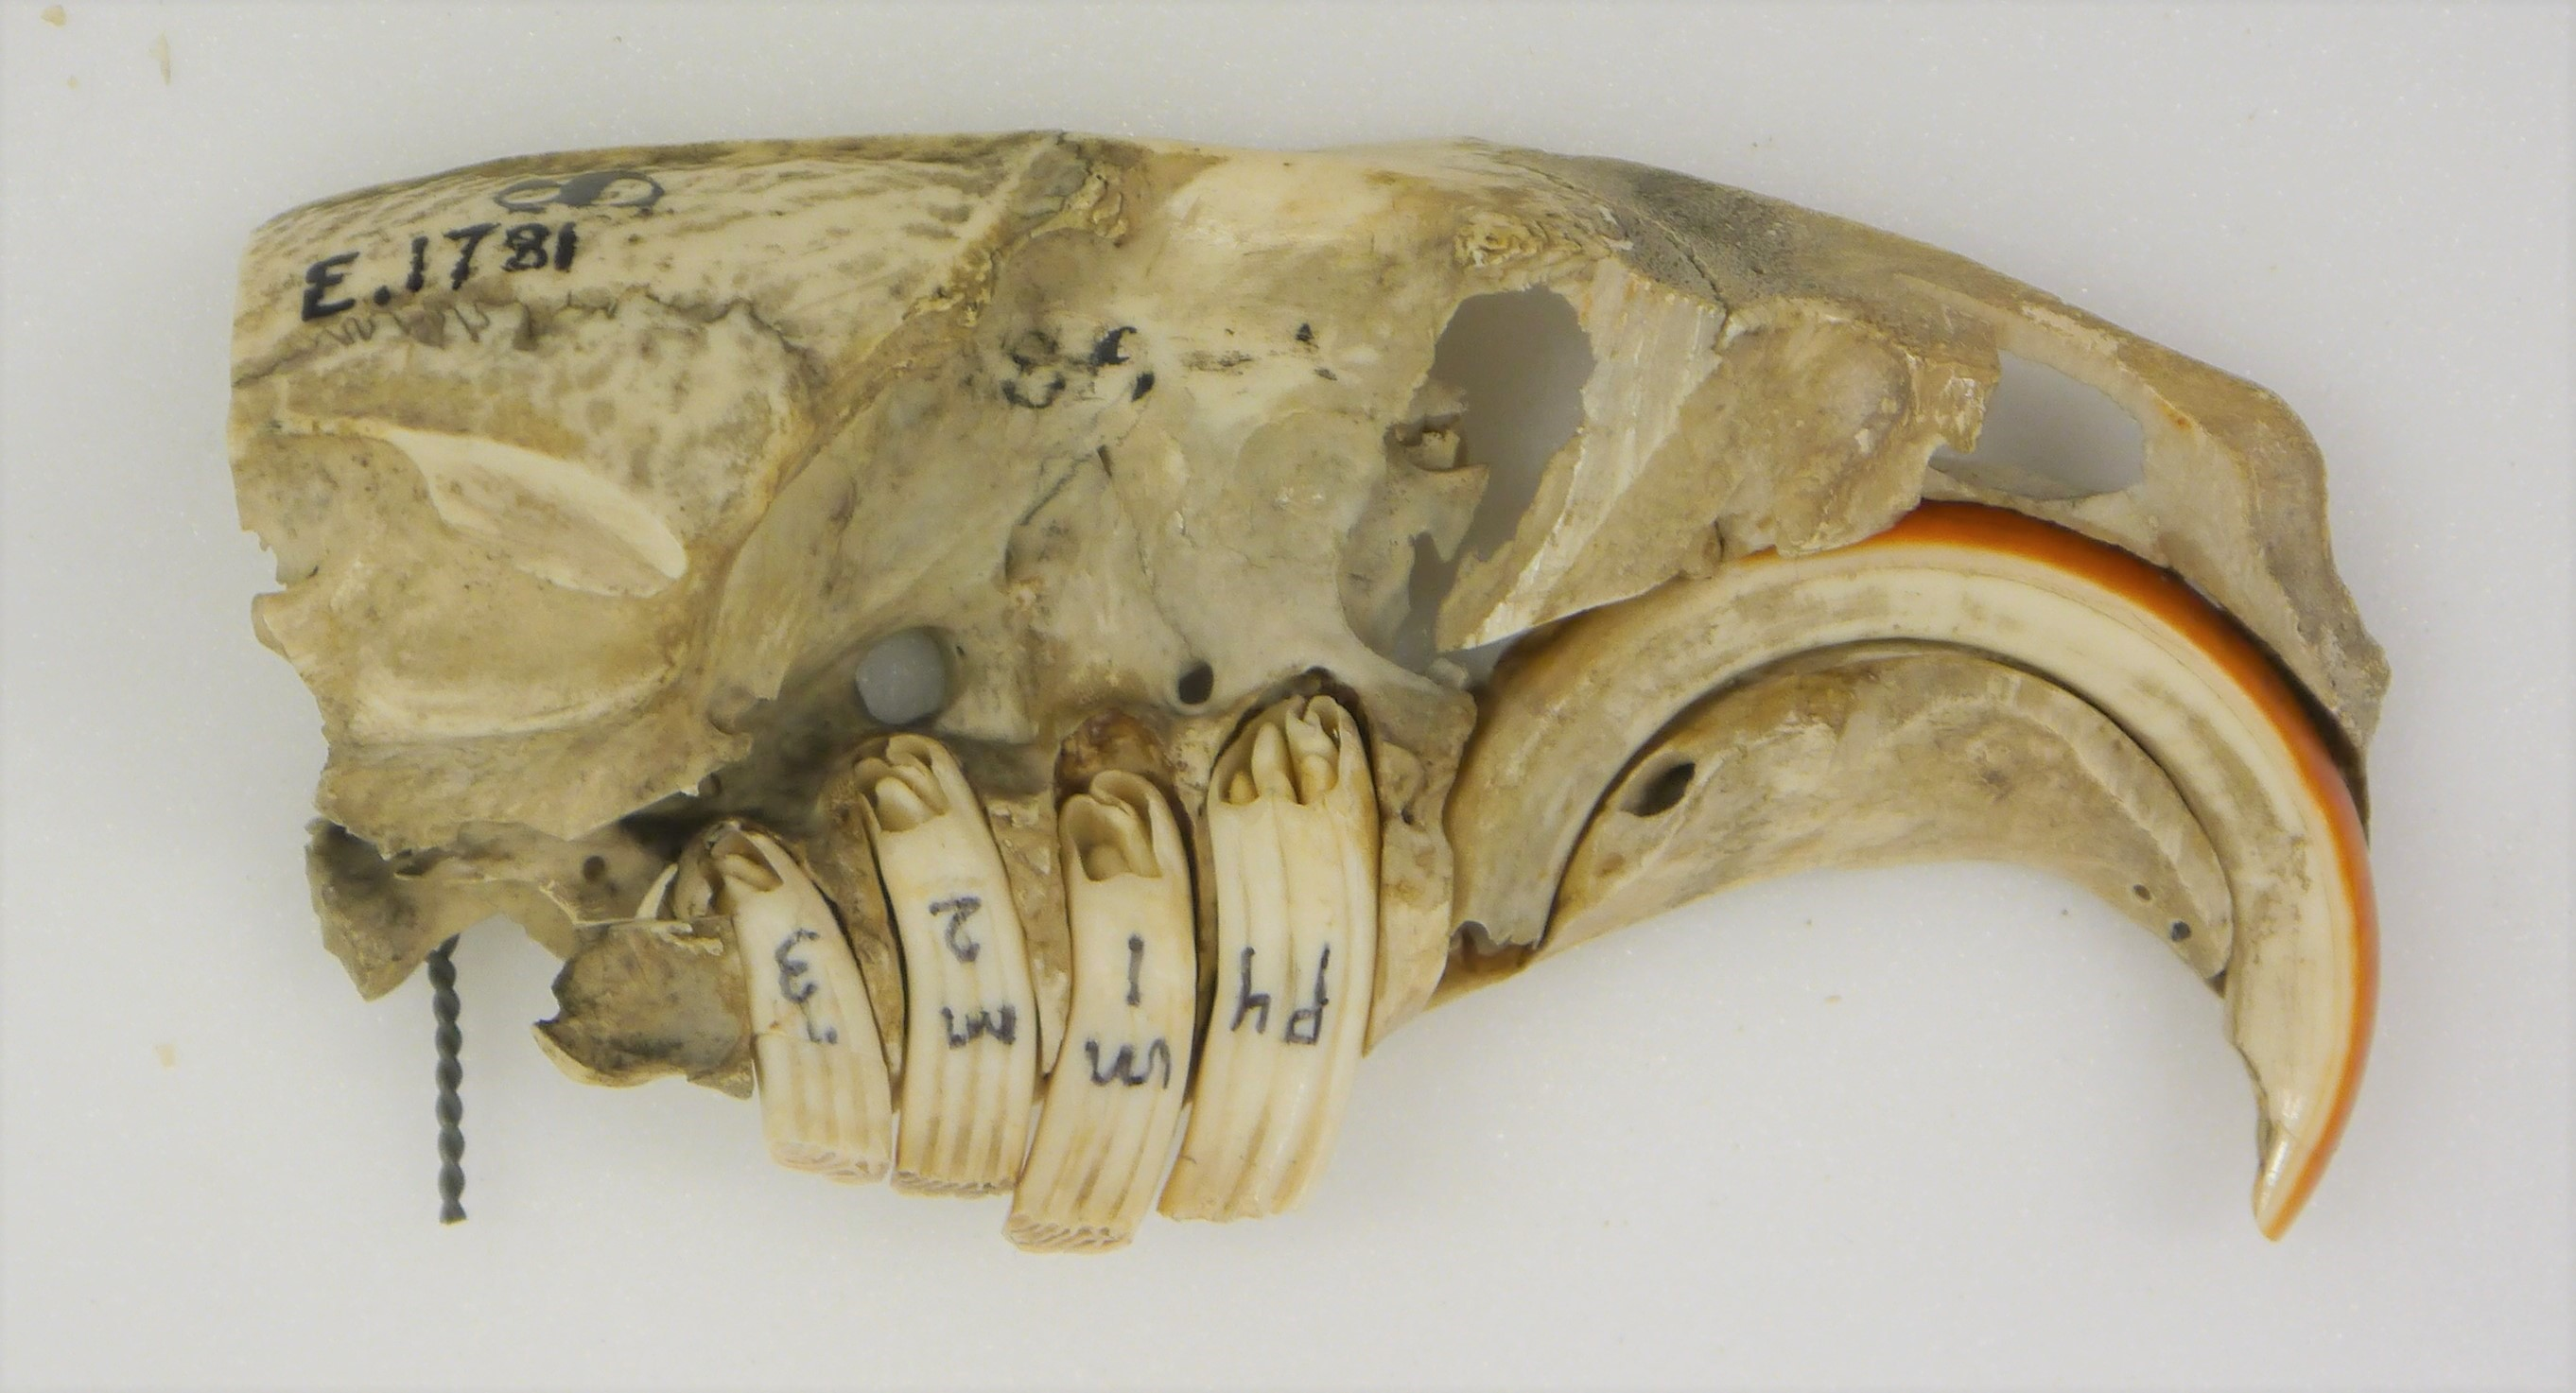 Photograph of a beaver skull showing the extent of the teeth